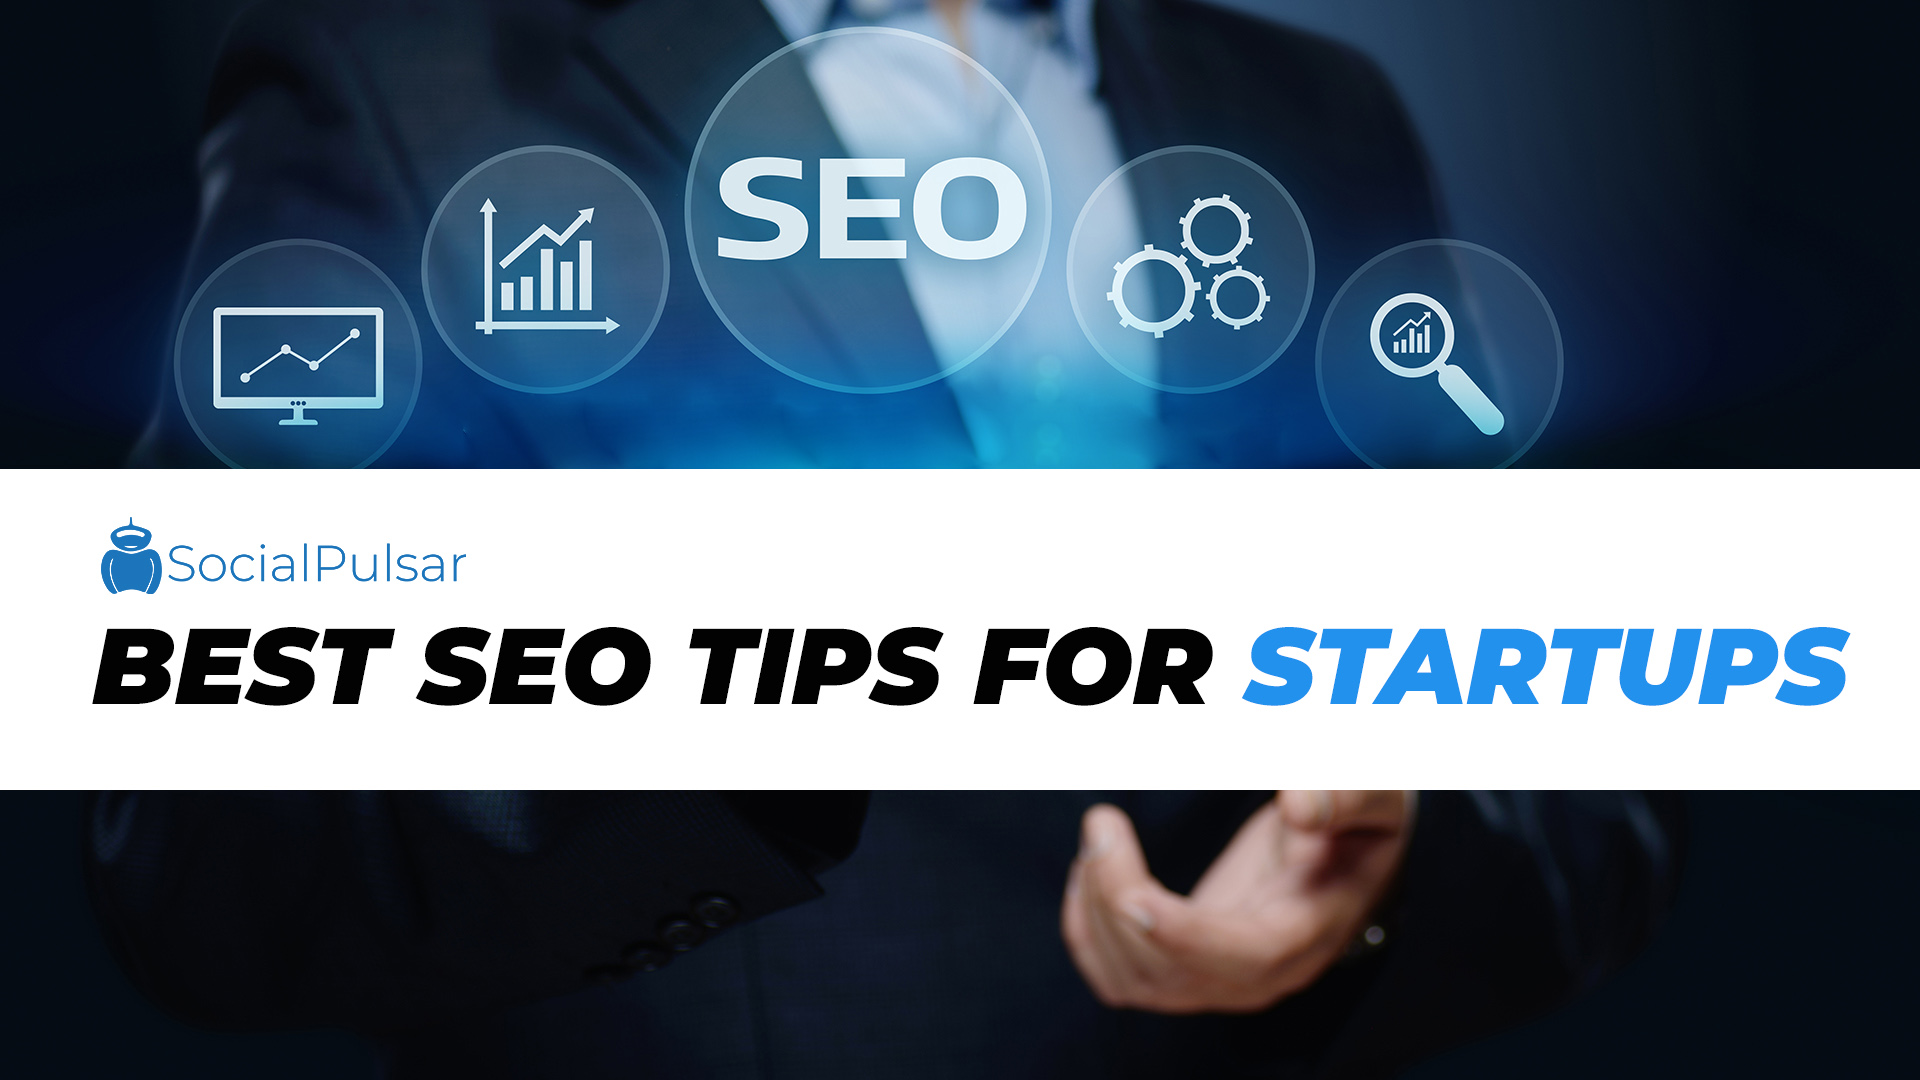 7 Best SEO Tips for Startups and Small Business